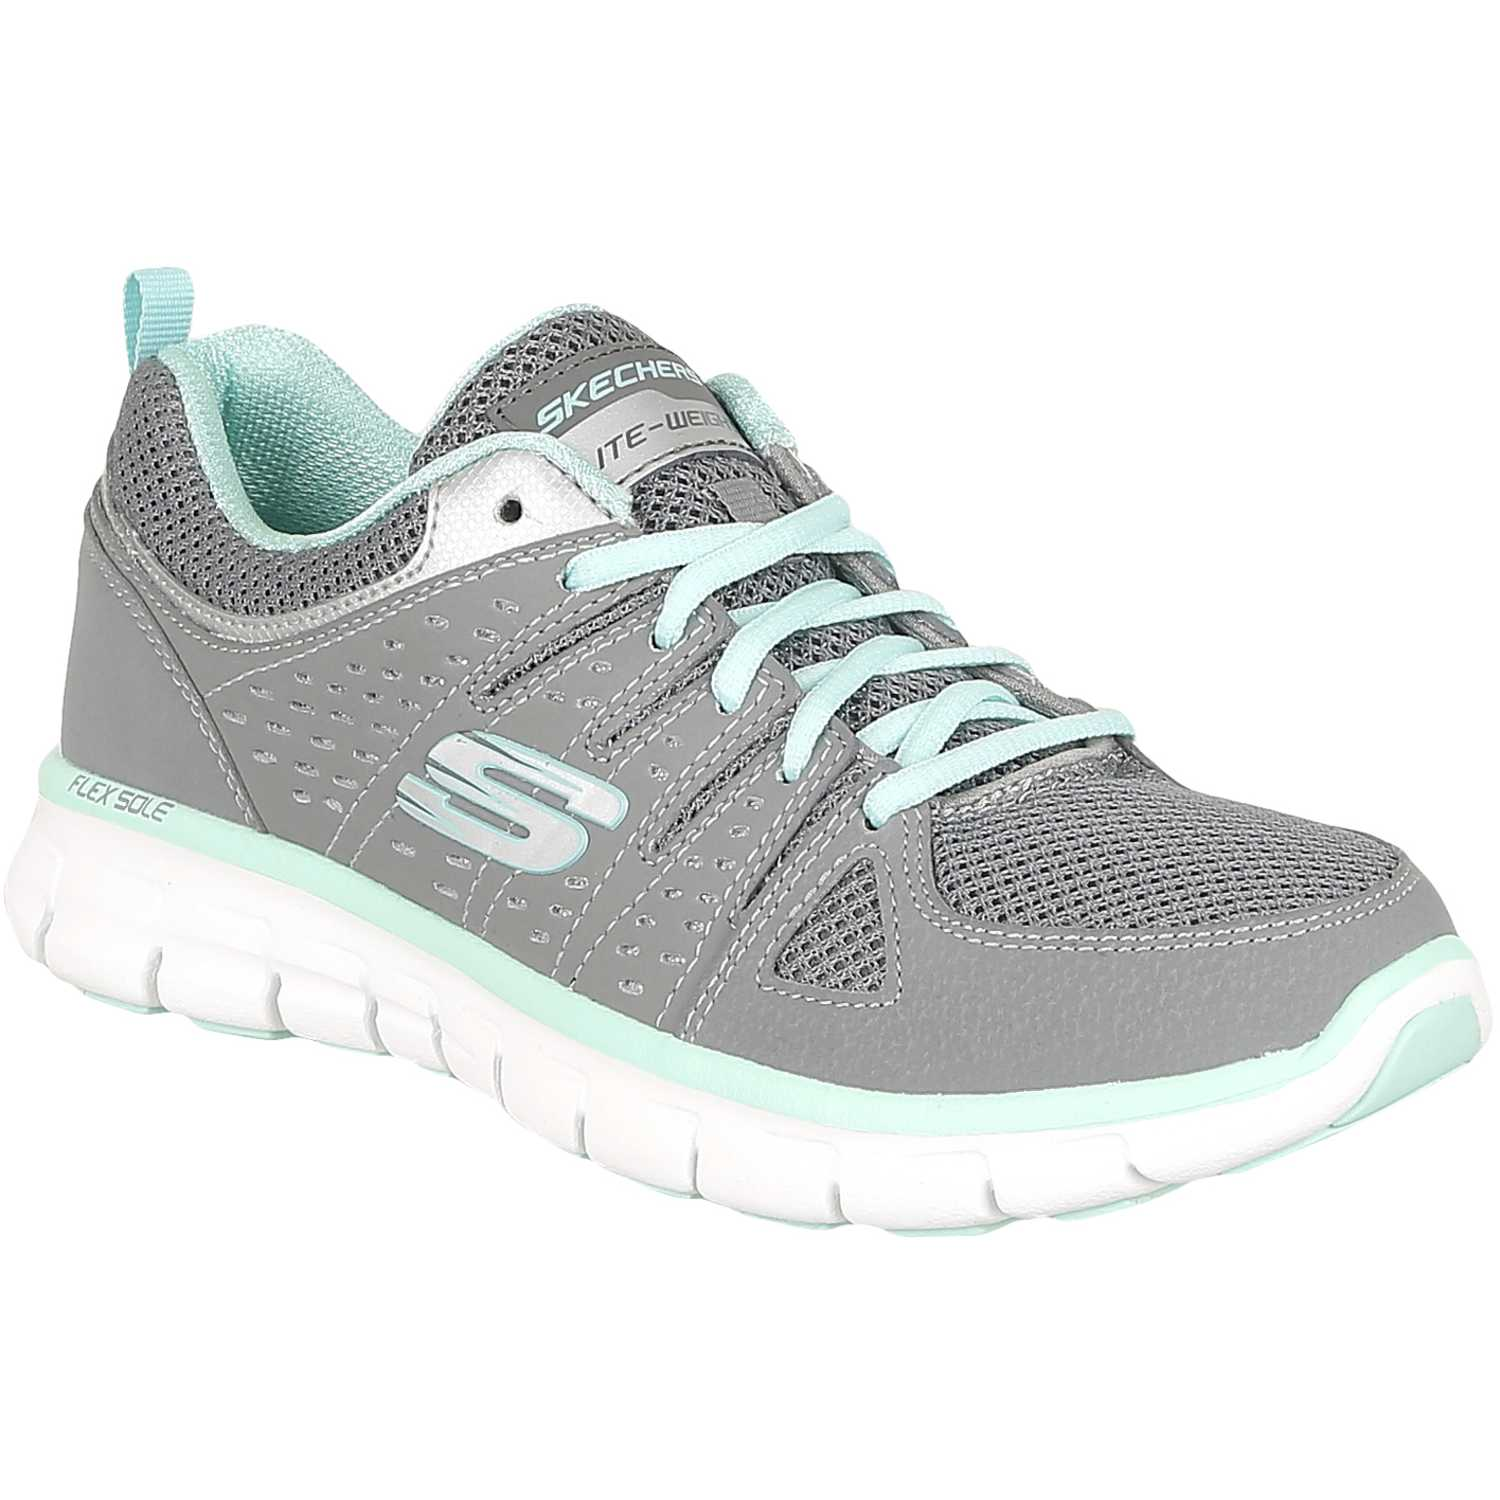 Synergy Casual De Mujer Skechers Gris 11963 tdCQrsh